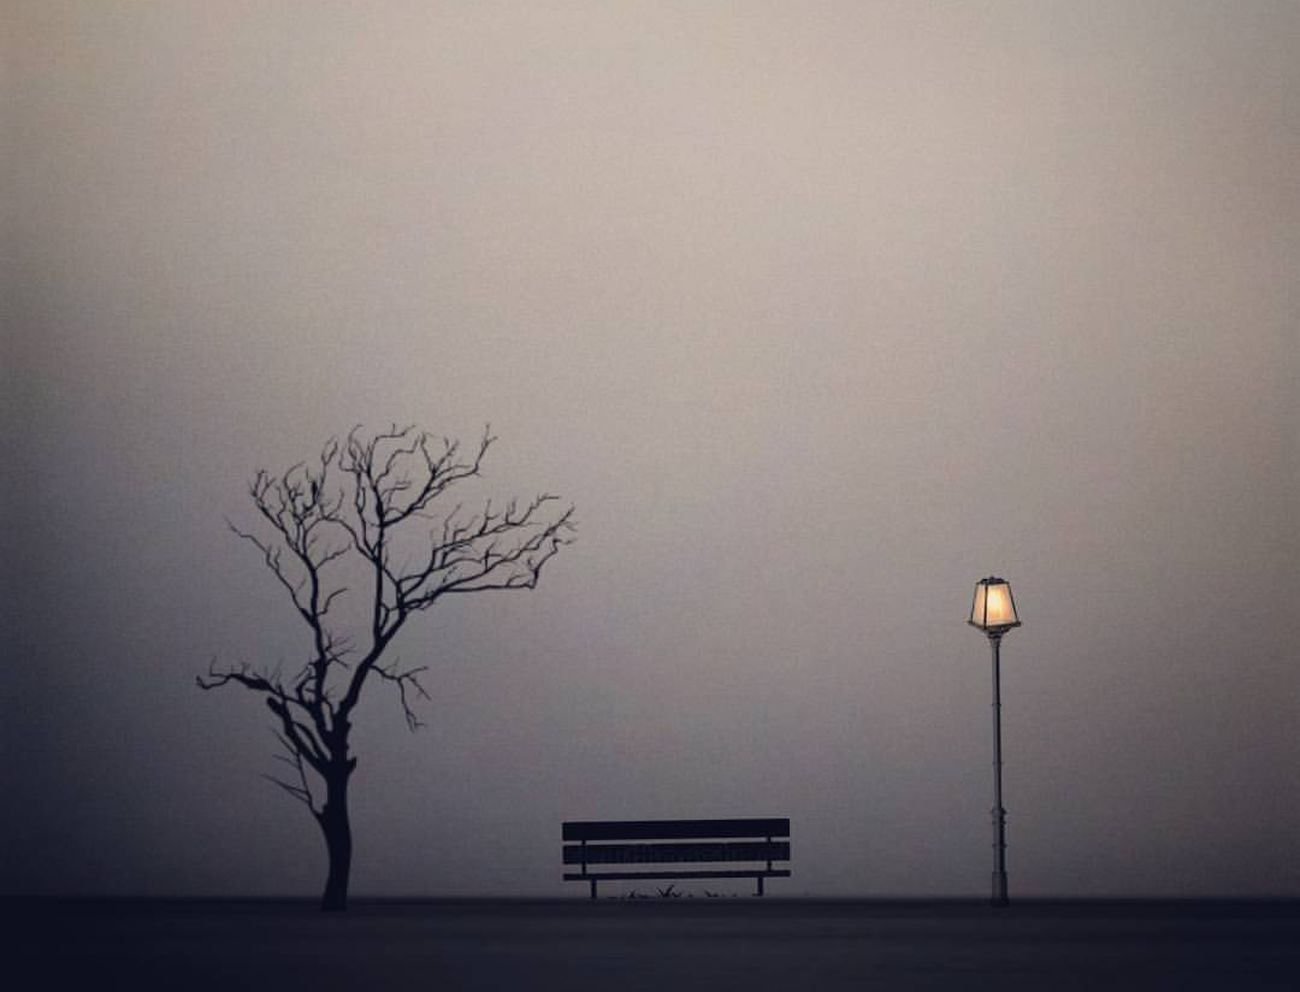 Would you like to sit down ? Bare Tree No People Tree Nature Looking For Inspiration Branch Tranquil Scene CaptureTheMoment Light And Darkness  Creative Photography Nightshift Night Lights Nightphotography Look Like It's Magic From My Point Of View Exceptional Photographs EyeEm Nature Lover Light Up Your Life Beauty In Nature Landscape Silhouette CreativePhotographer Bench Its Me Capture The Moment